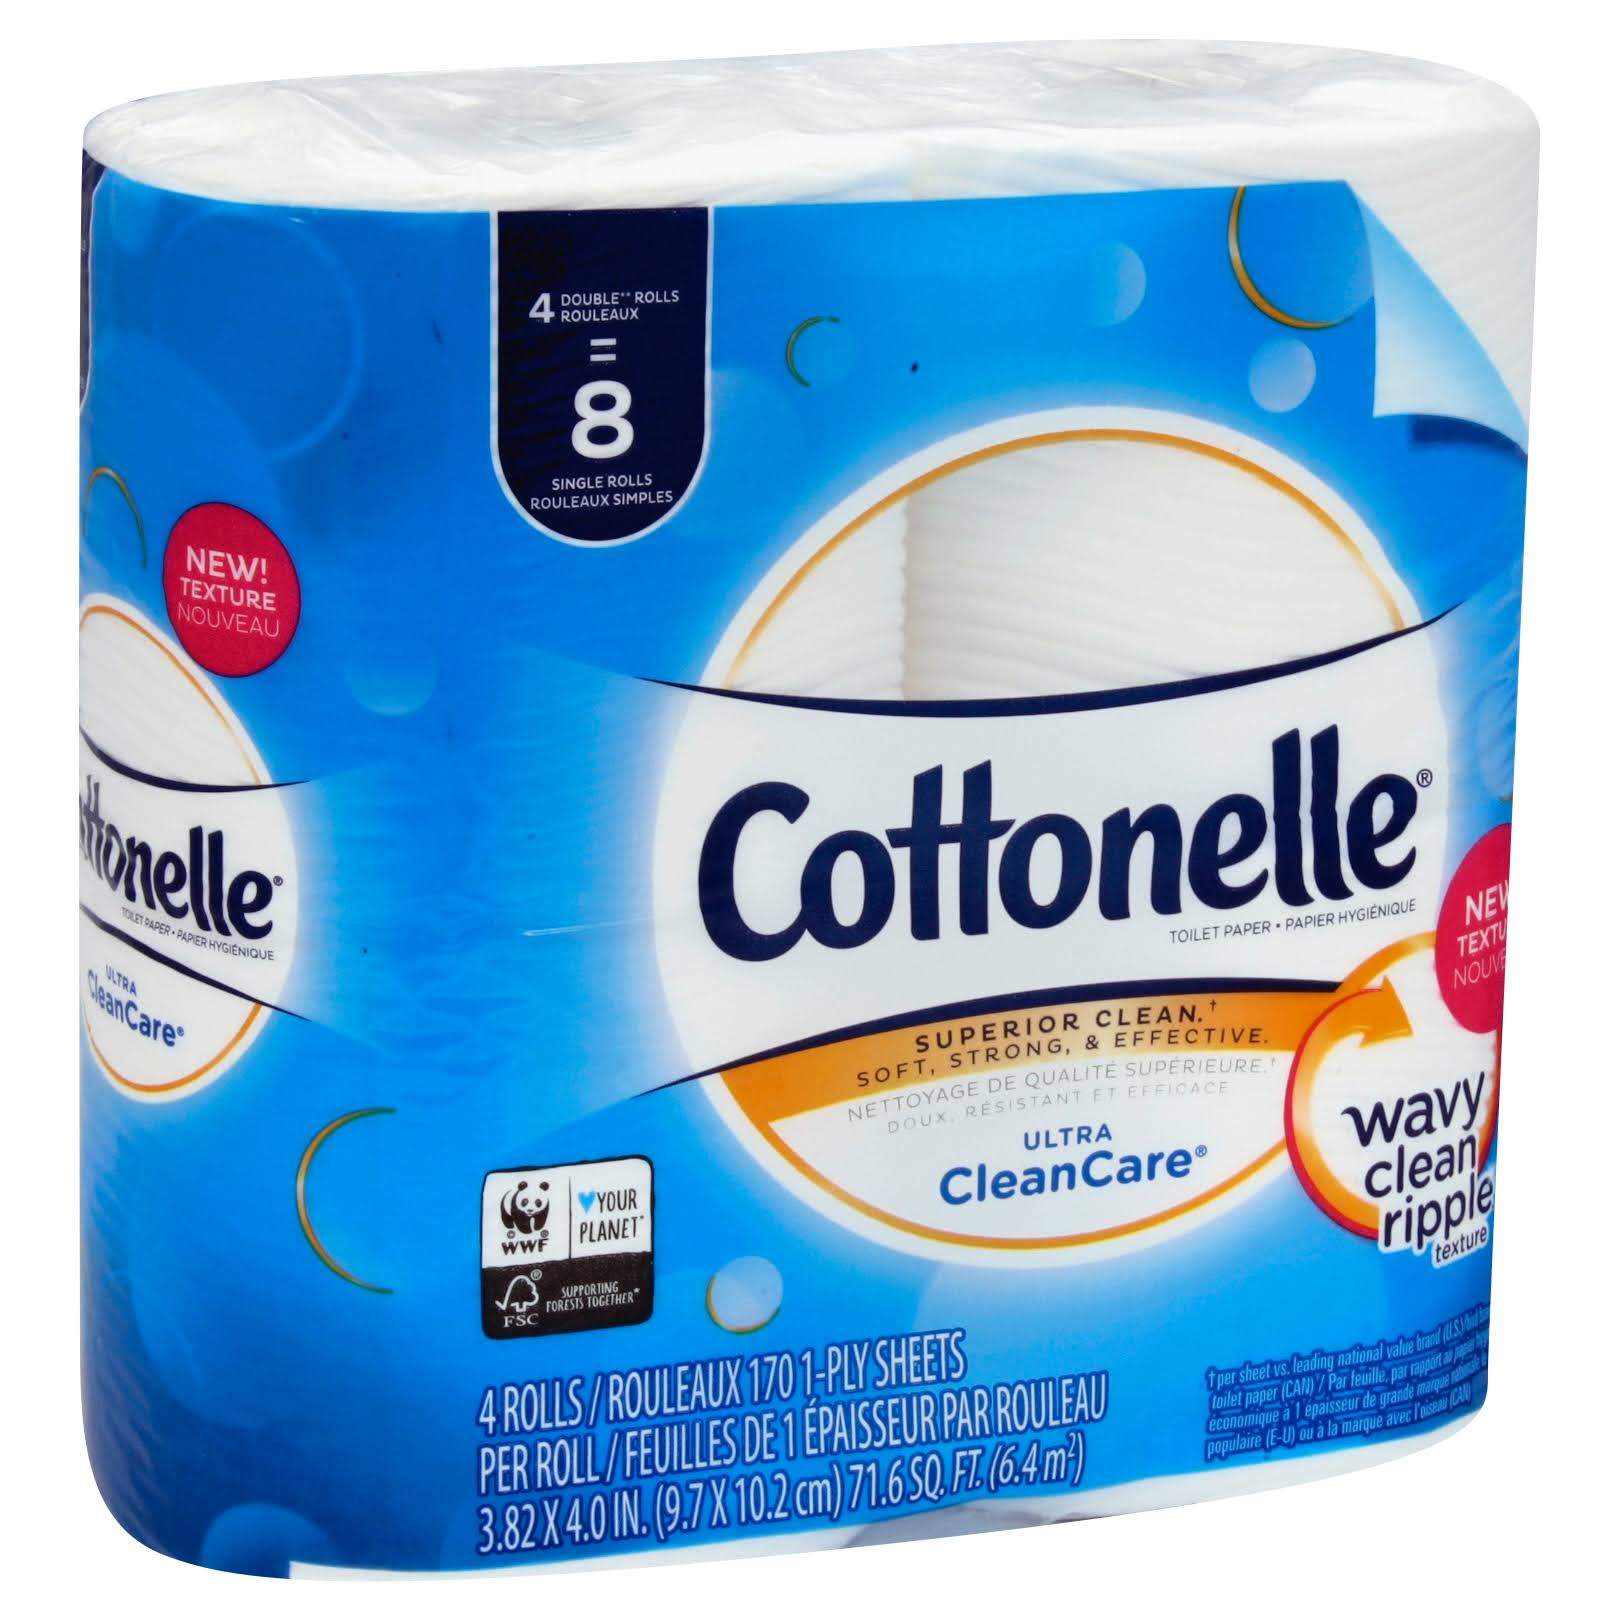 Cottonelle Ultra CleanCare Toilet Paper, Double Rolls, 1 Ply - 4 rolls